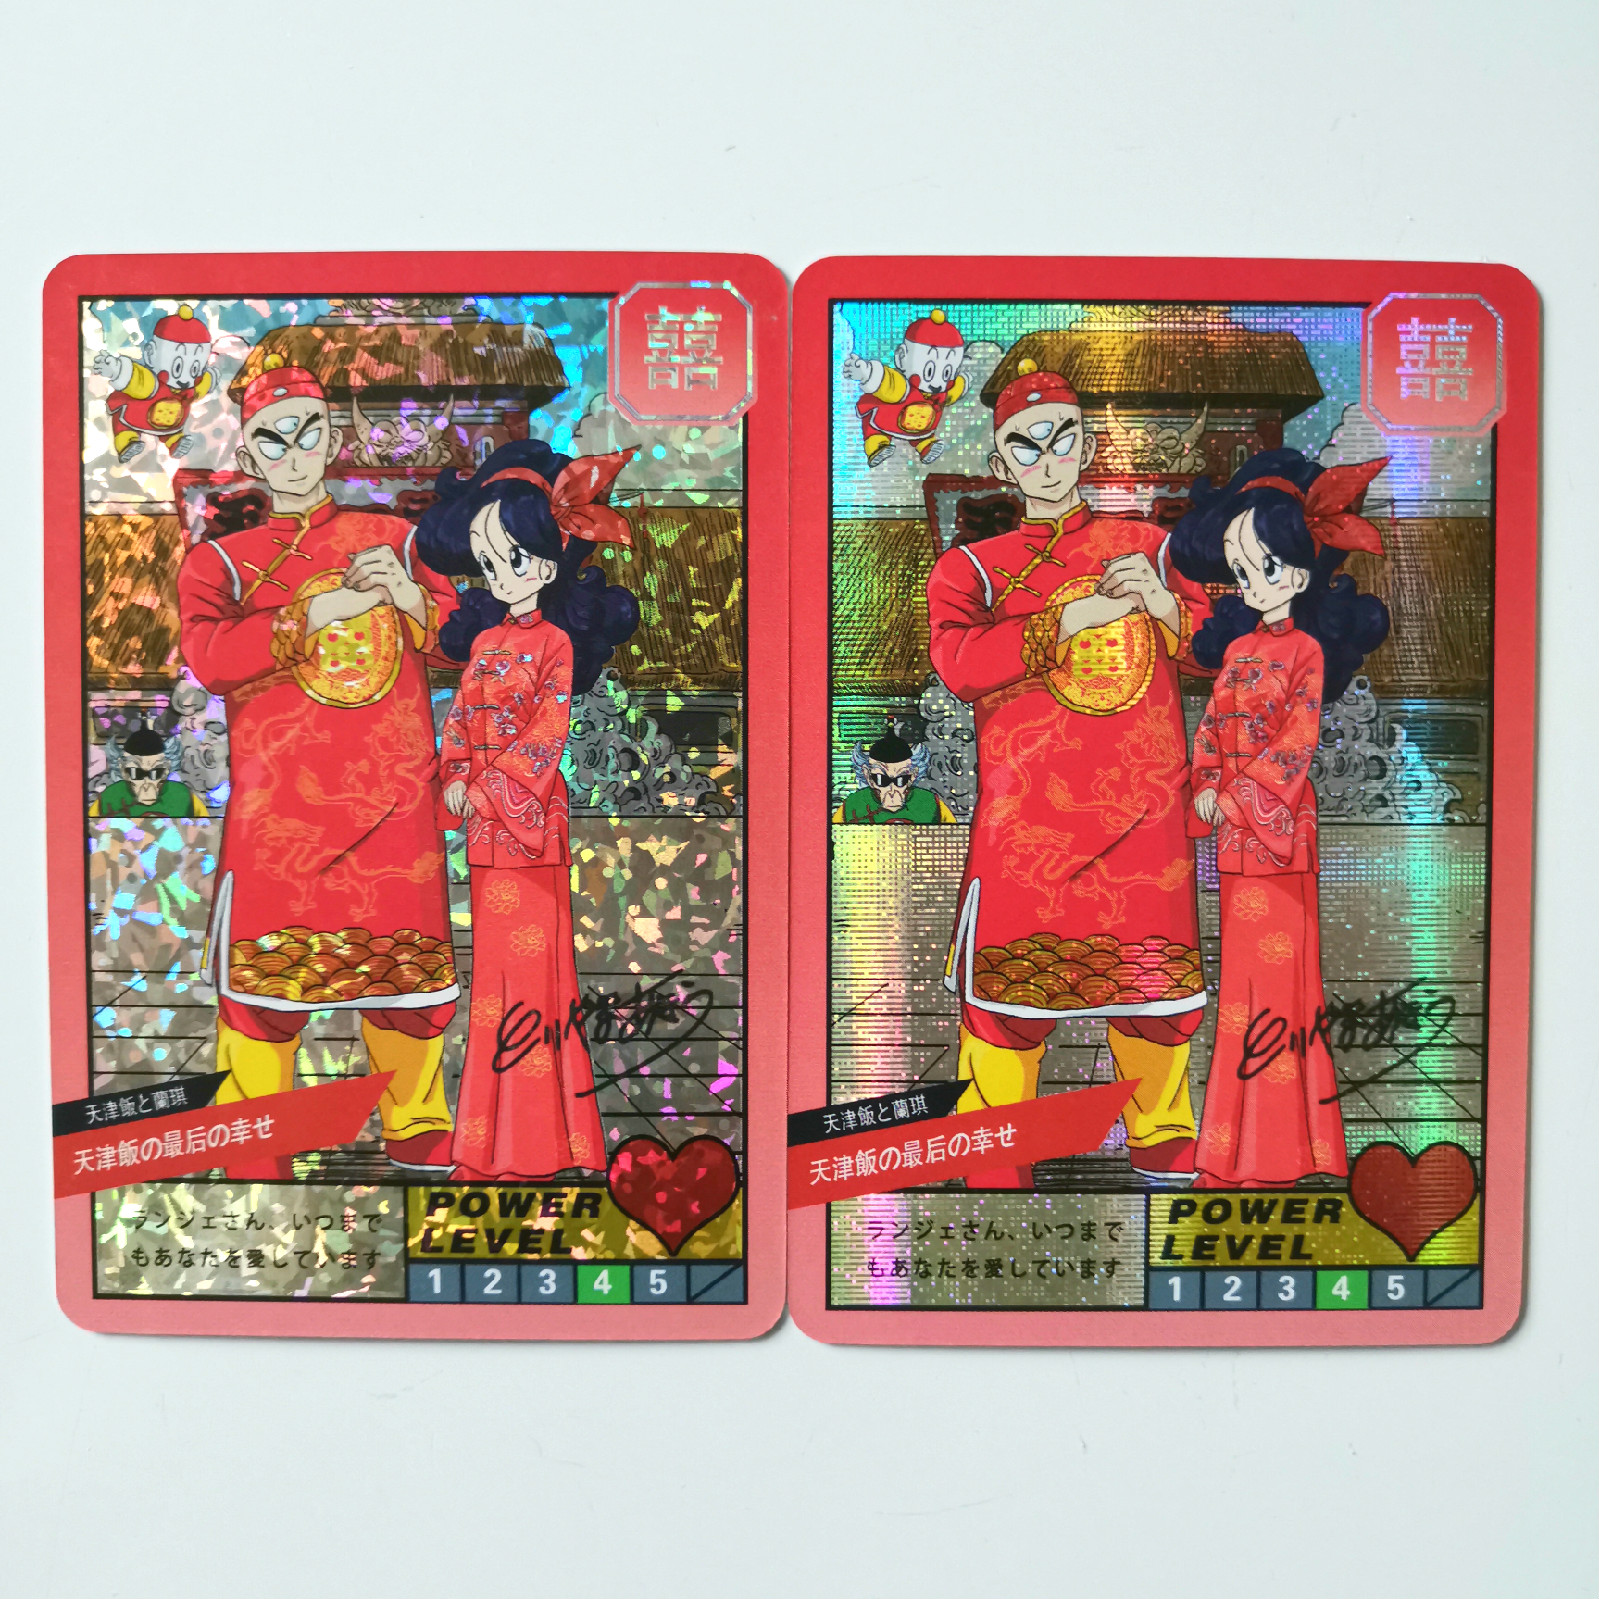 10pcs Super Dragon Ball Z Tien Shinhan Lunch Marry Heroes Battle Card Ultra Game Collection Cards